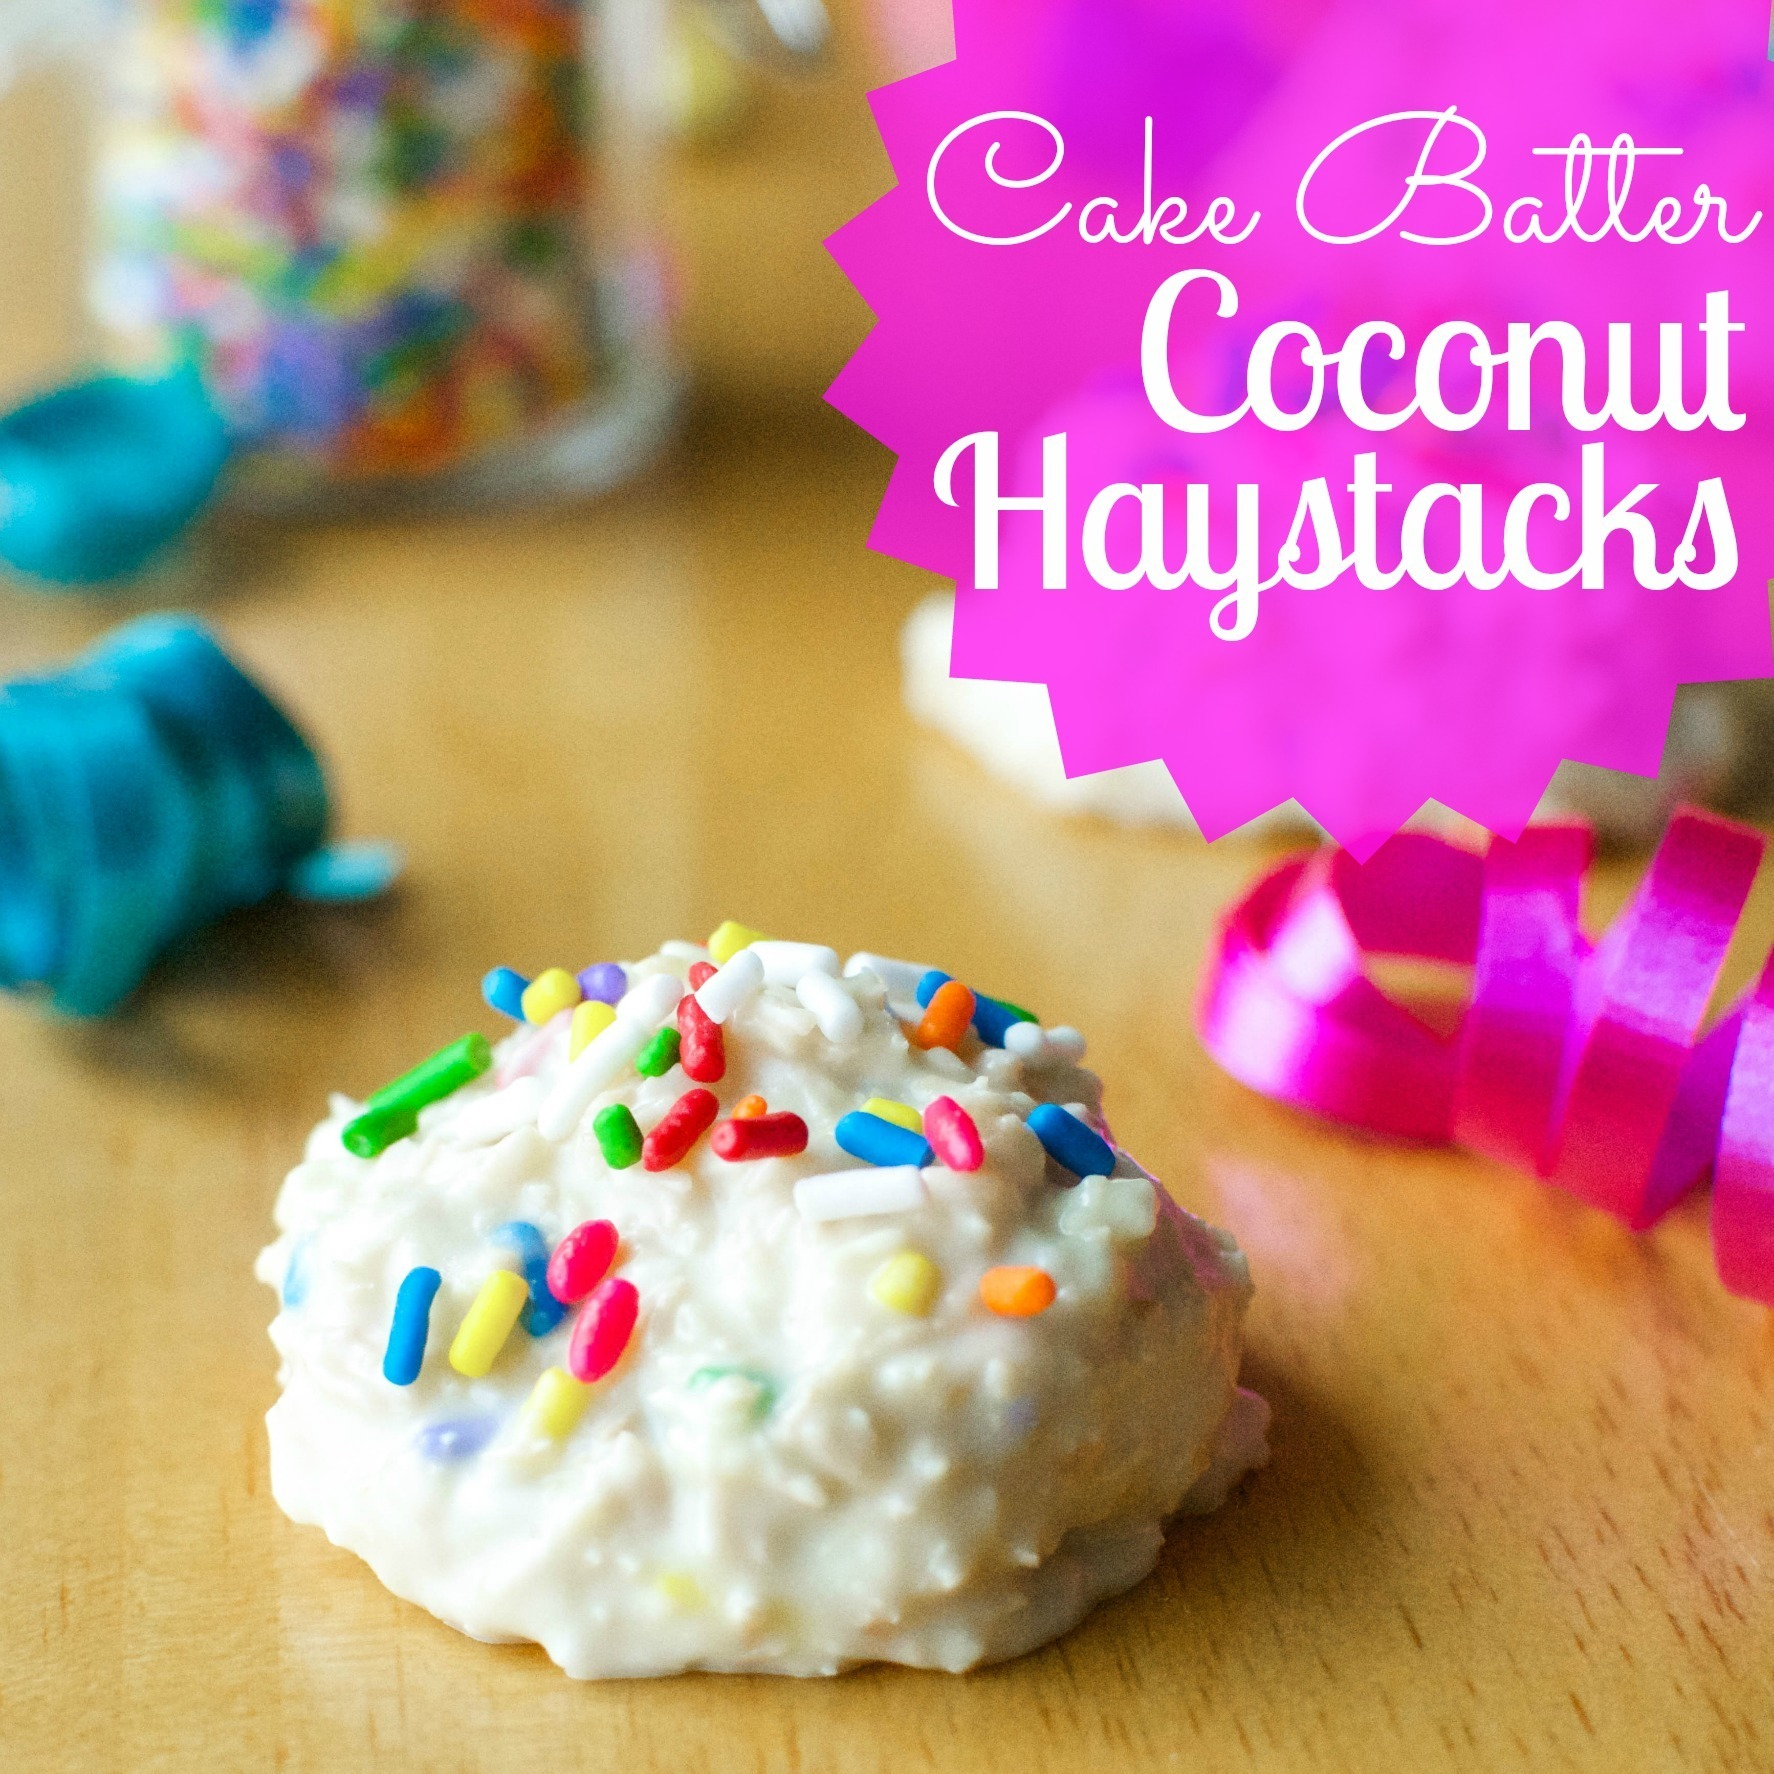 Cake Batter Coconut Haystacks